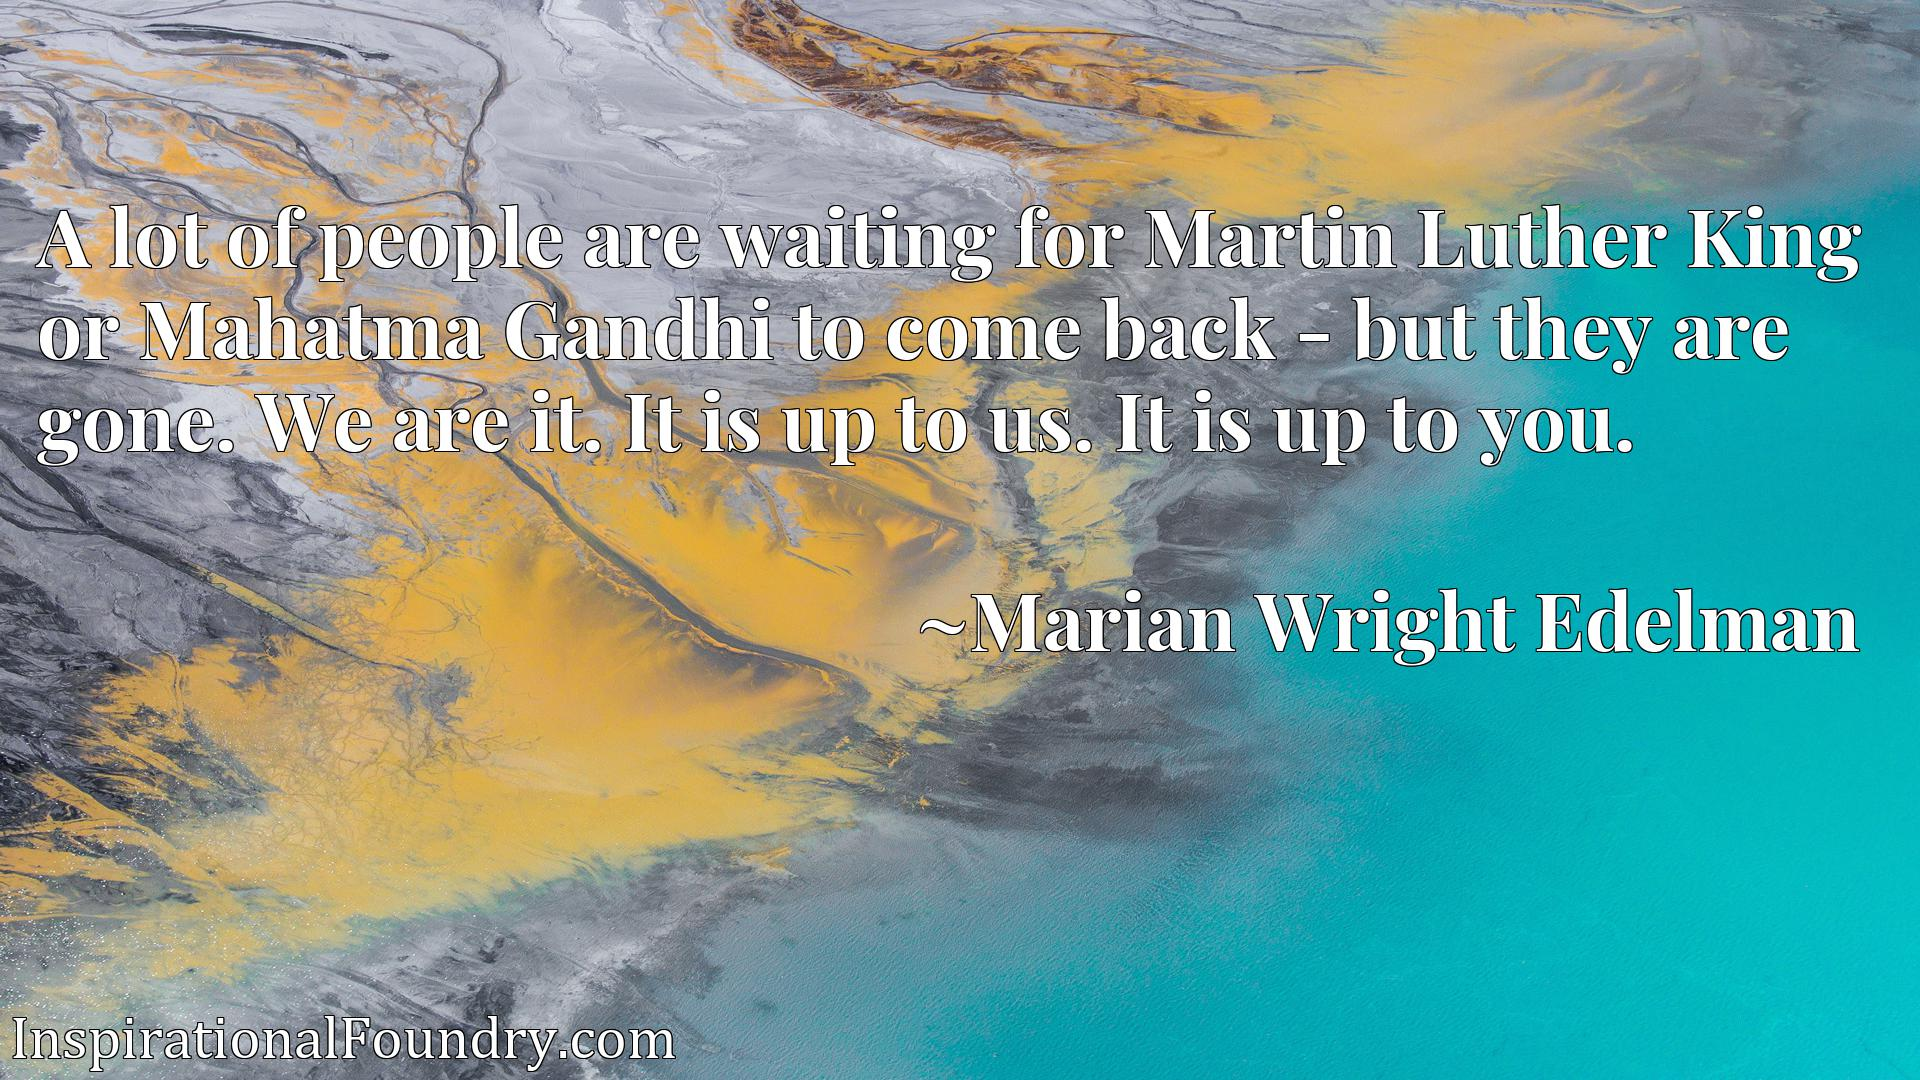 A lot of people are waiting for Martin Luther King or Mahatma Gandhi to come back - but they are gone. We are it. It is up to us. It is up to you.